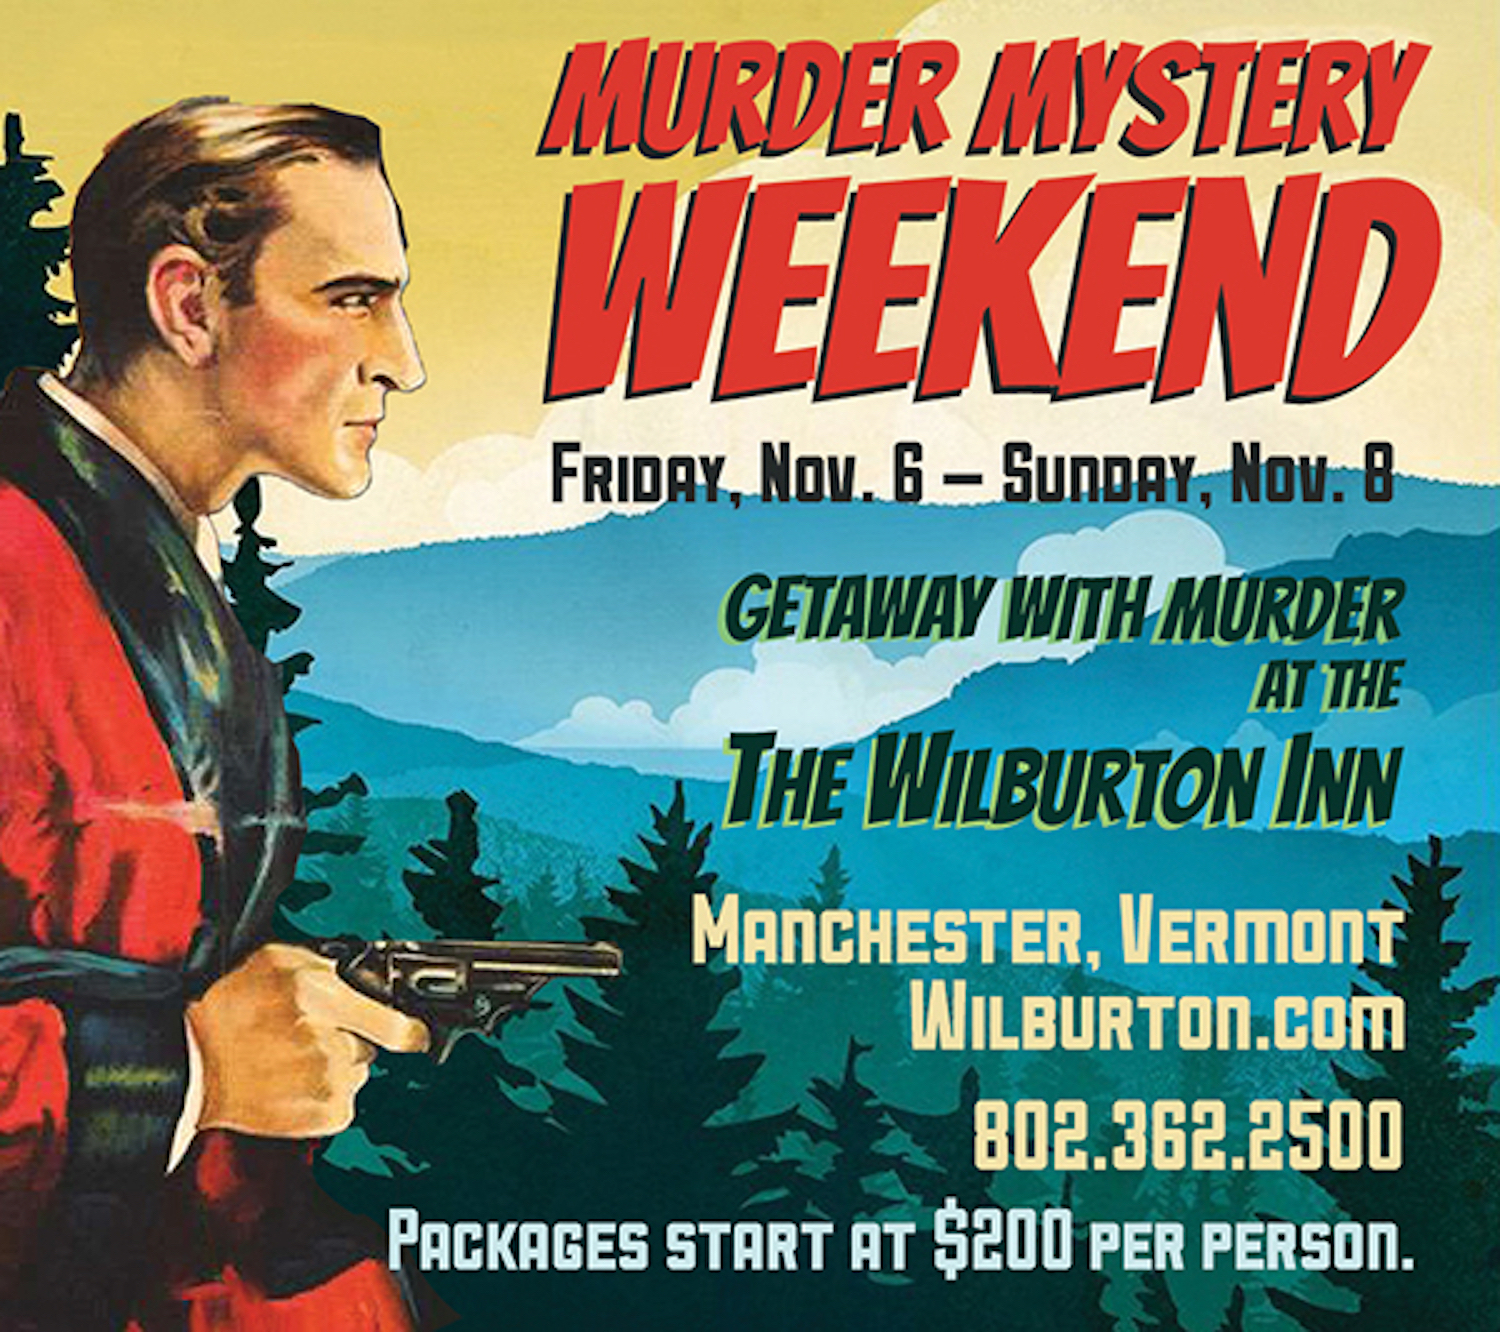 Murder mystery poster 2015 Ad_ConstantContact.jpg